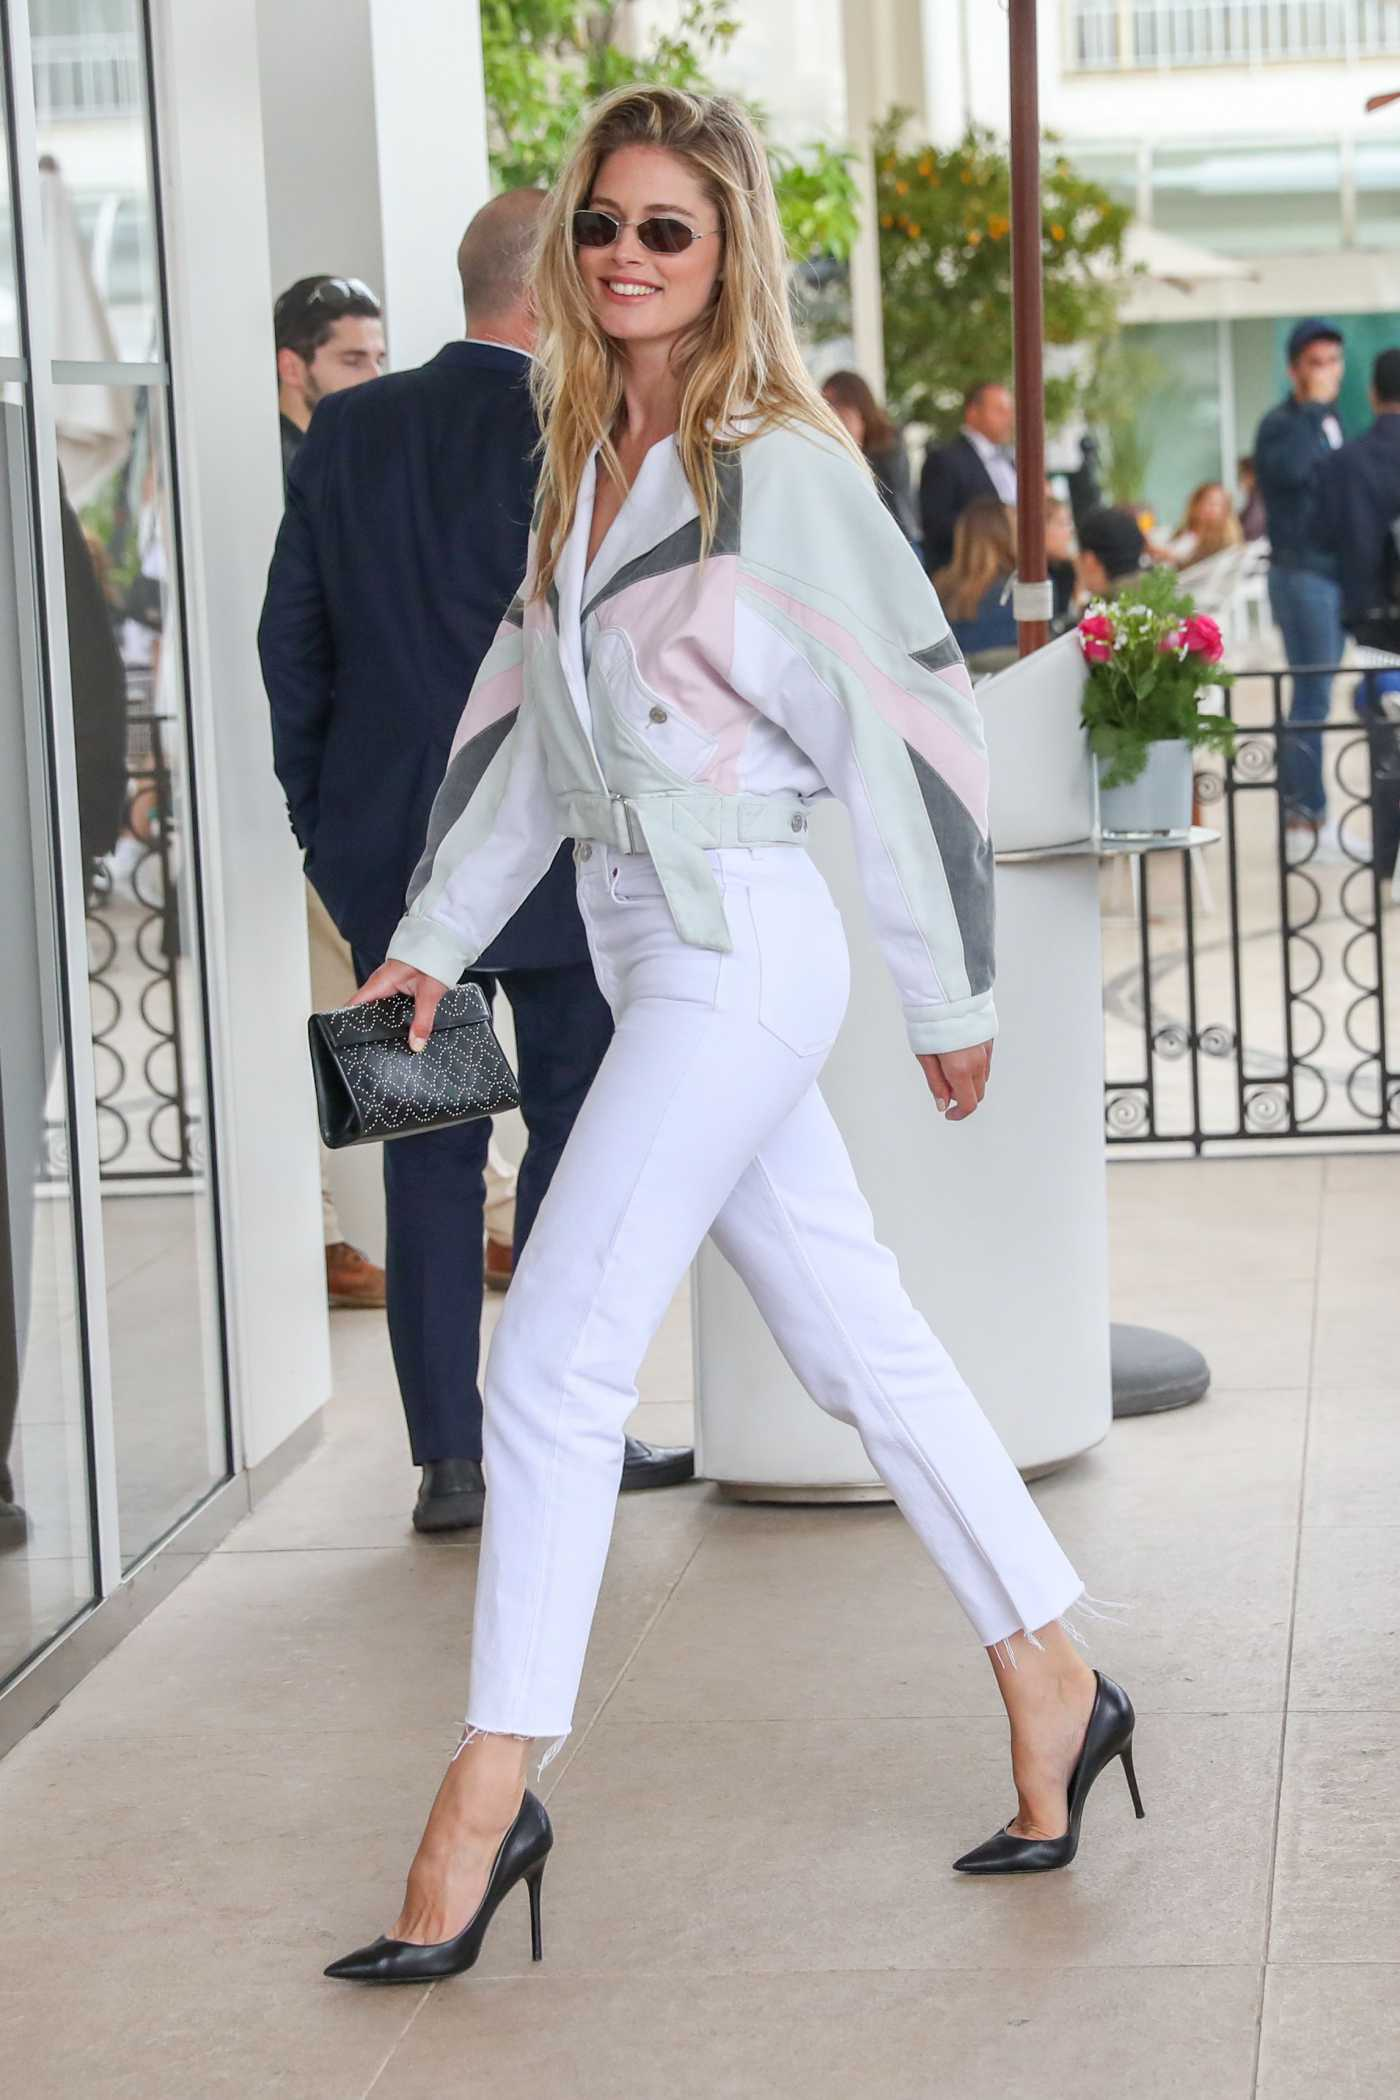 Doutzen Kroes in a White Jeans Arrives at the Martinez Hotel During the 72nd Annual Cannes Film Festival in Cannes 05/21/2019